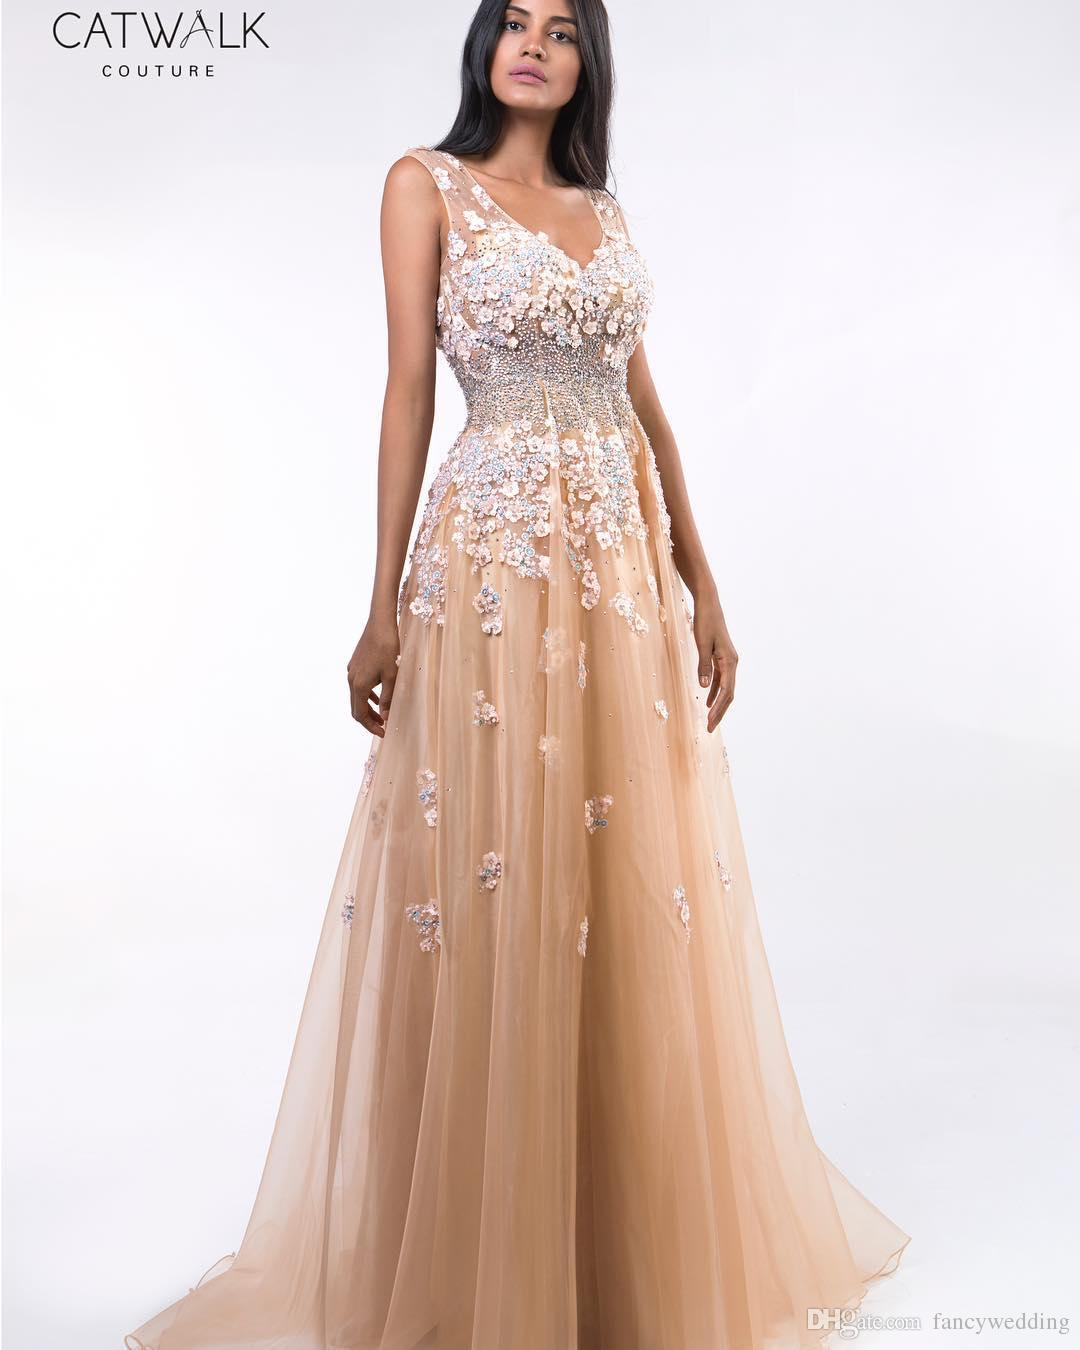 Champagne Beaded Lace 2019 African Evening Dresses Deep V-enck A-line Prom Dresses Sexy Formal Party Bridesmaid Pageant Gowns